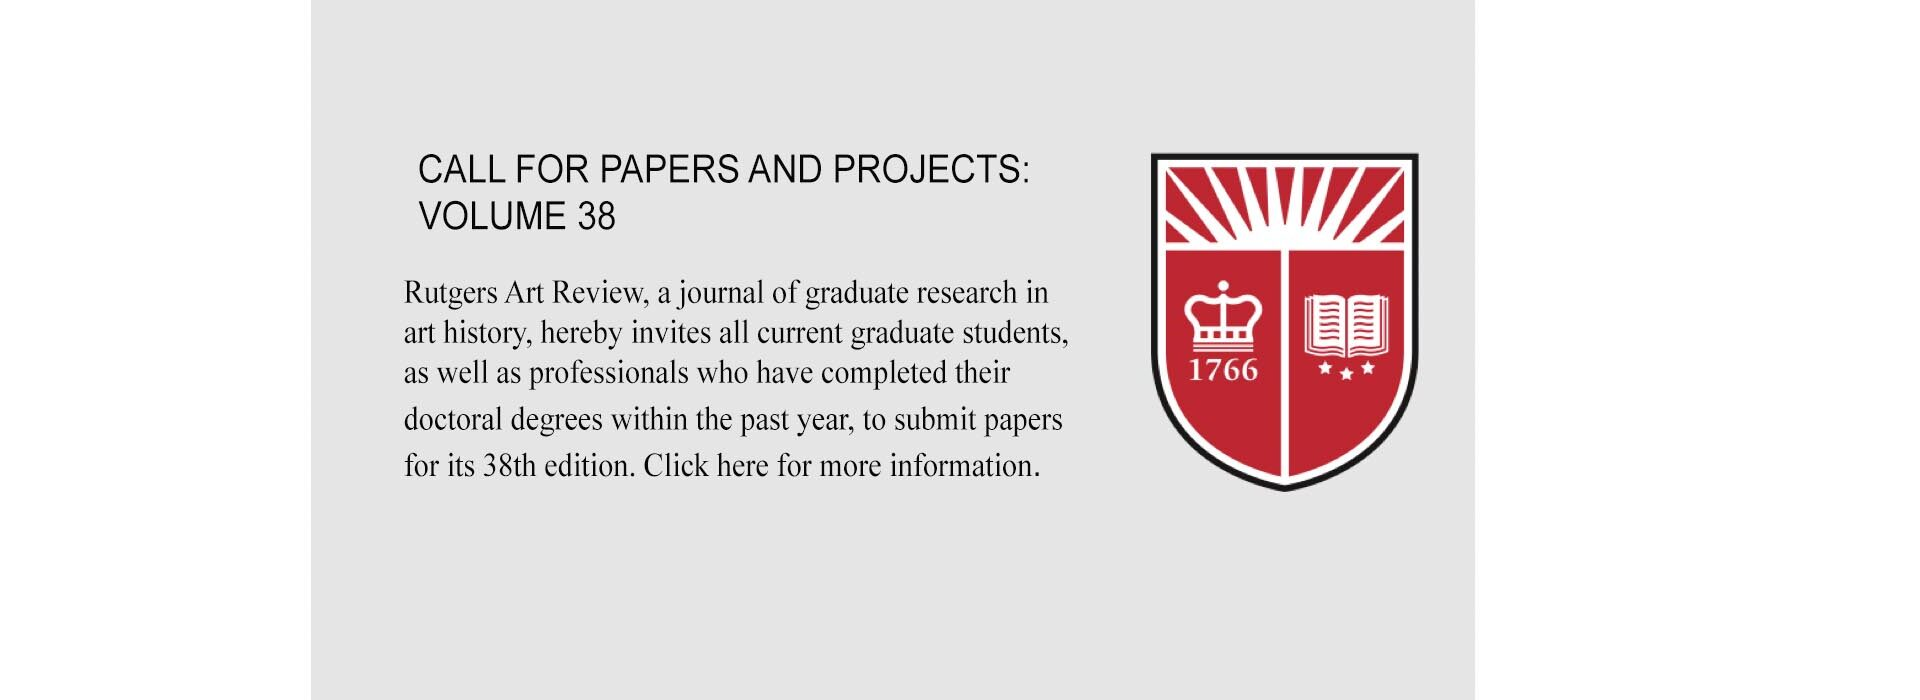 Permalink to: Call for Papers and Digital Projects